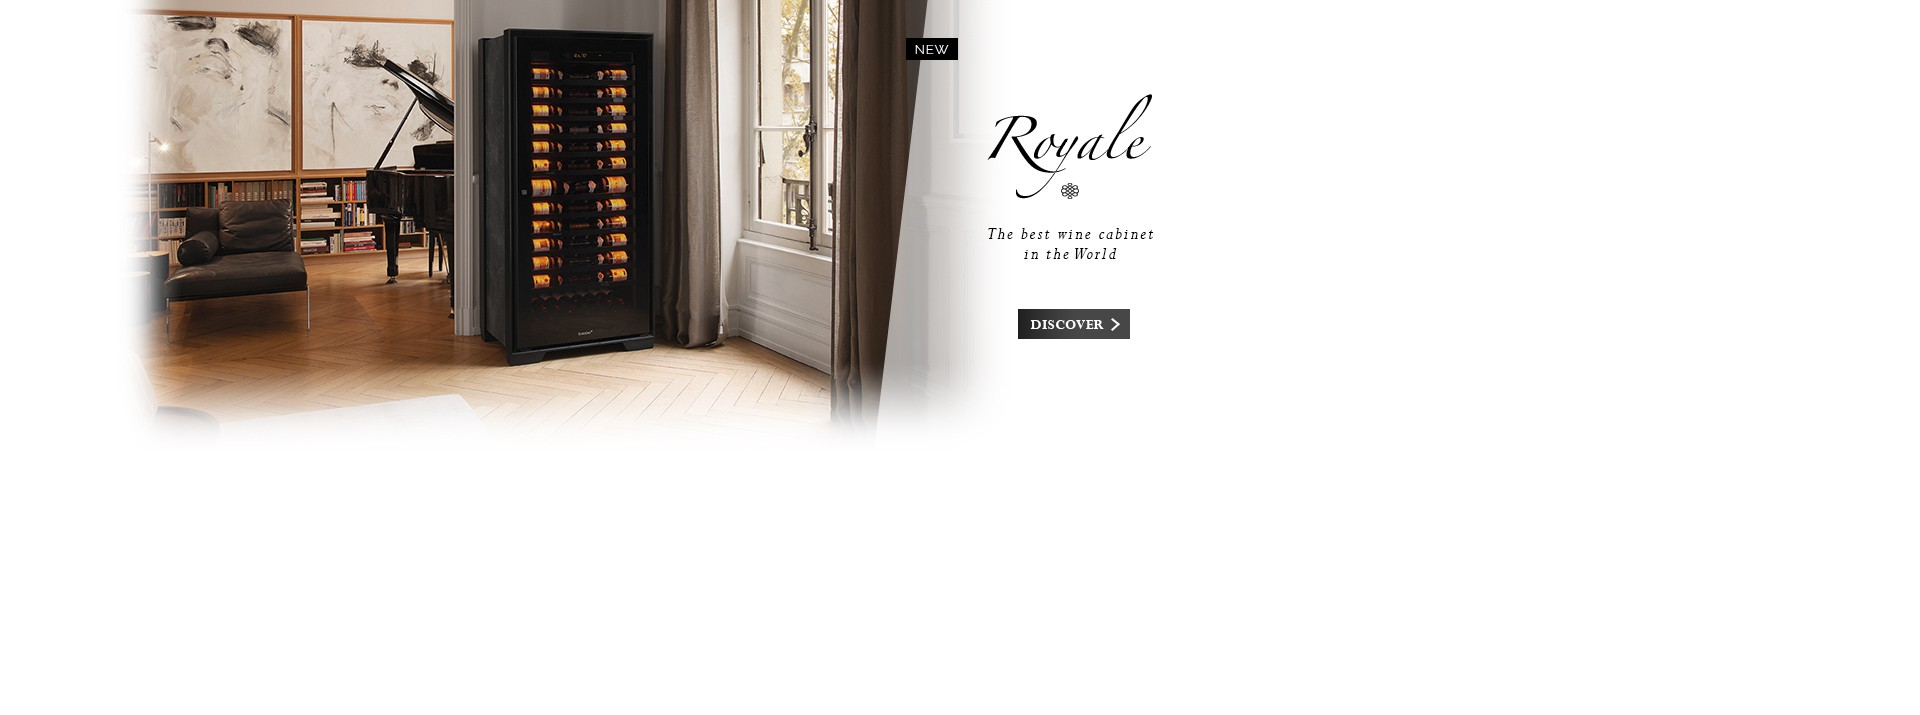 Royale - The best maturing wine cabinet in the world